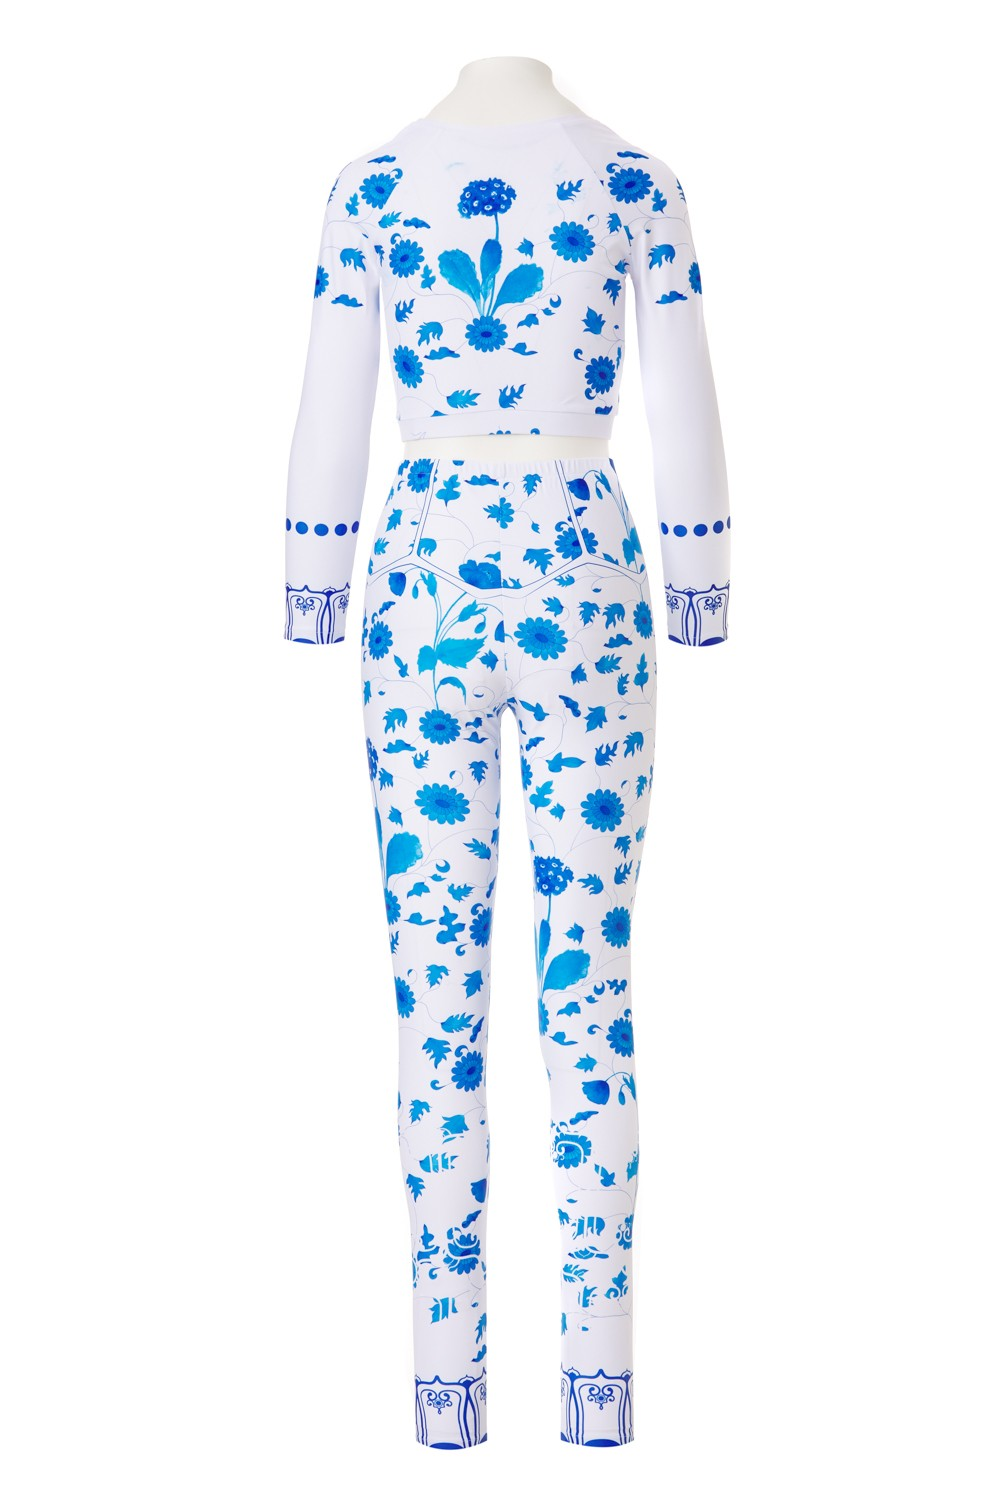 Printed Set - Flowers of the house - MING - blue